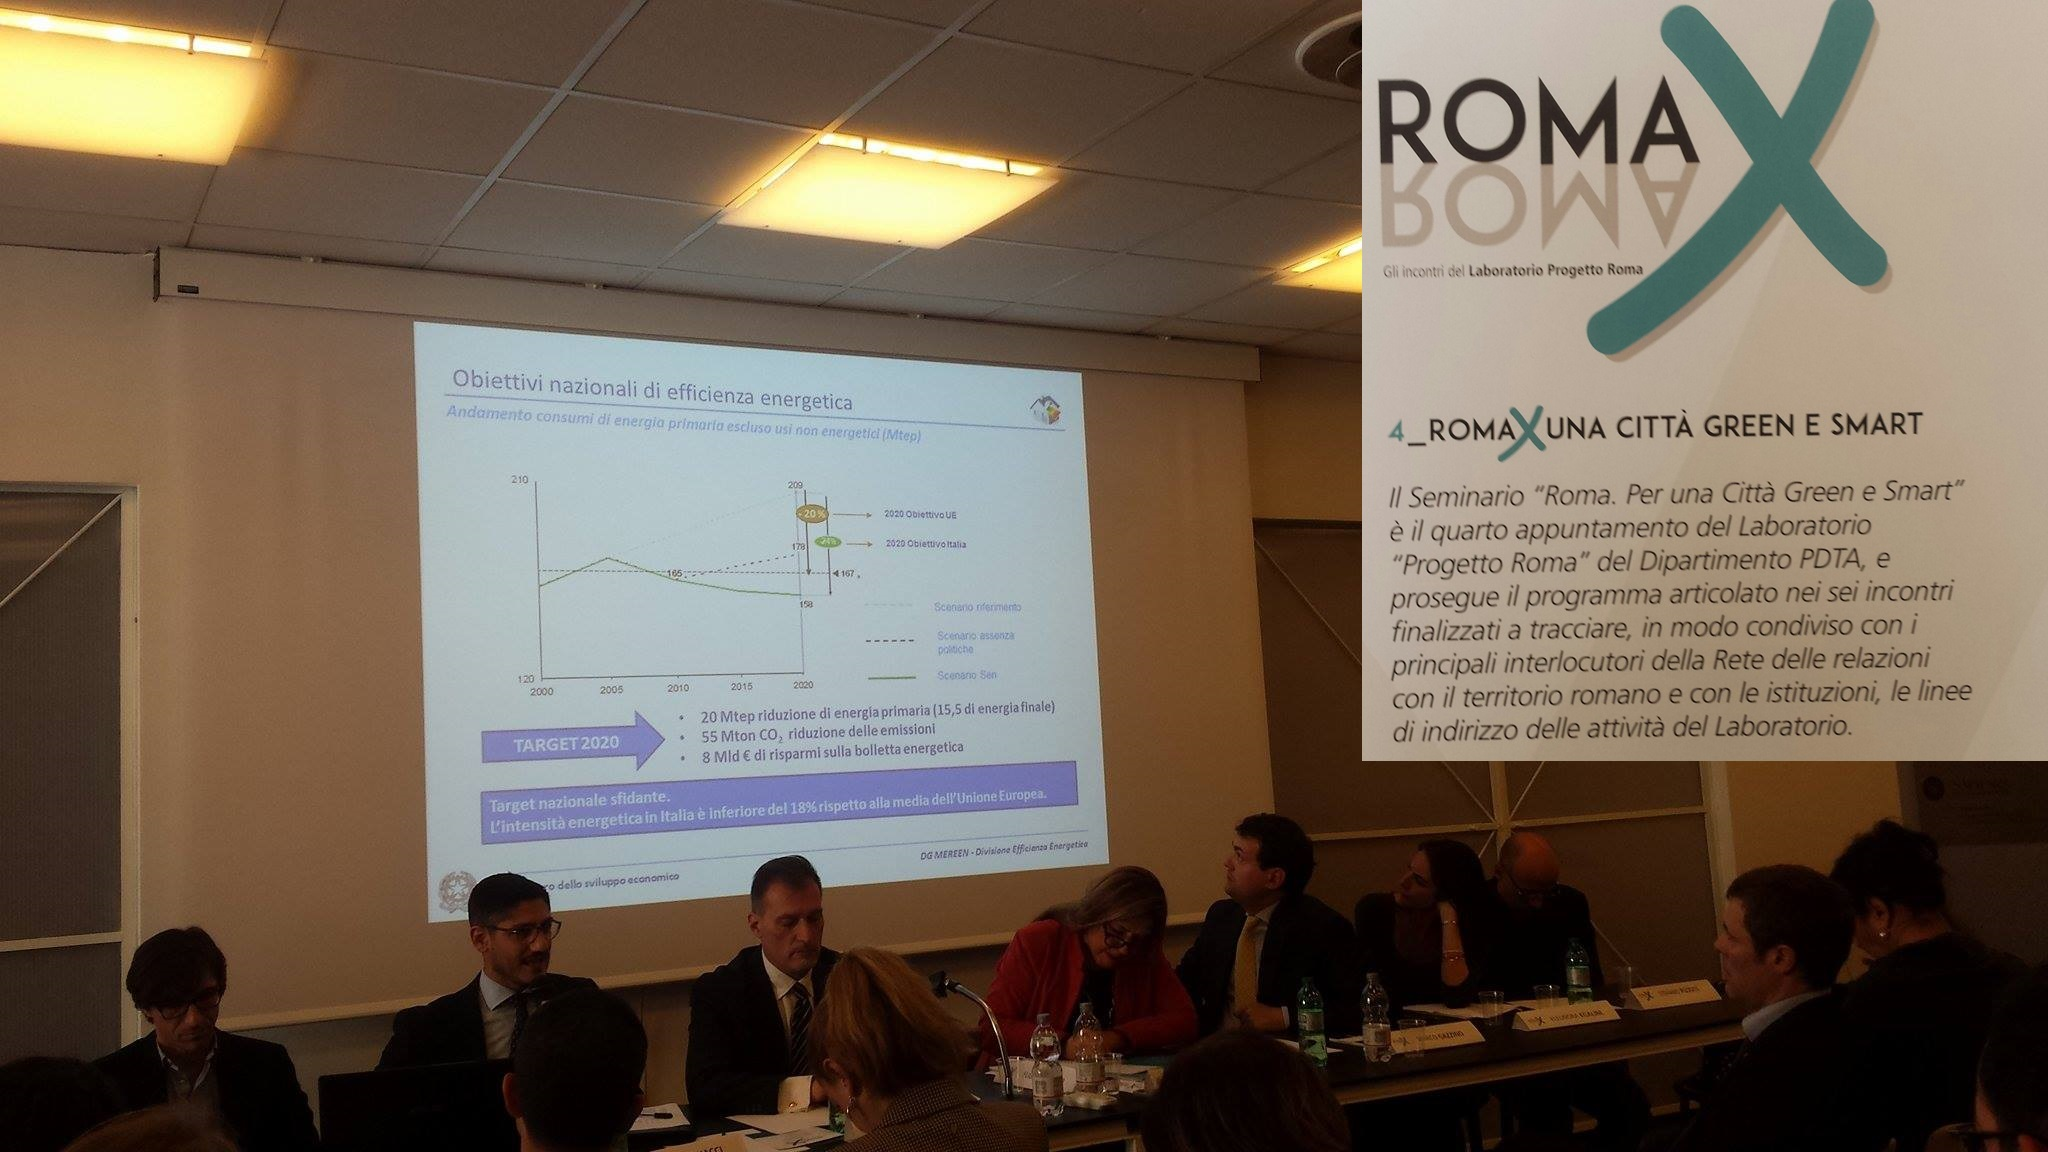 Smart city e più green, Roma a La Sapienza